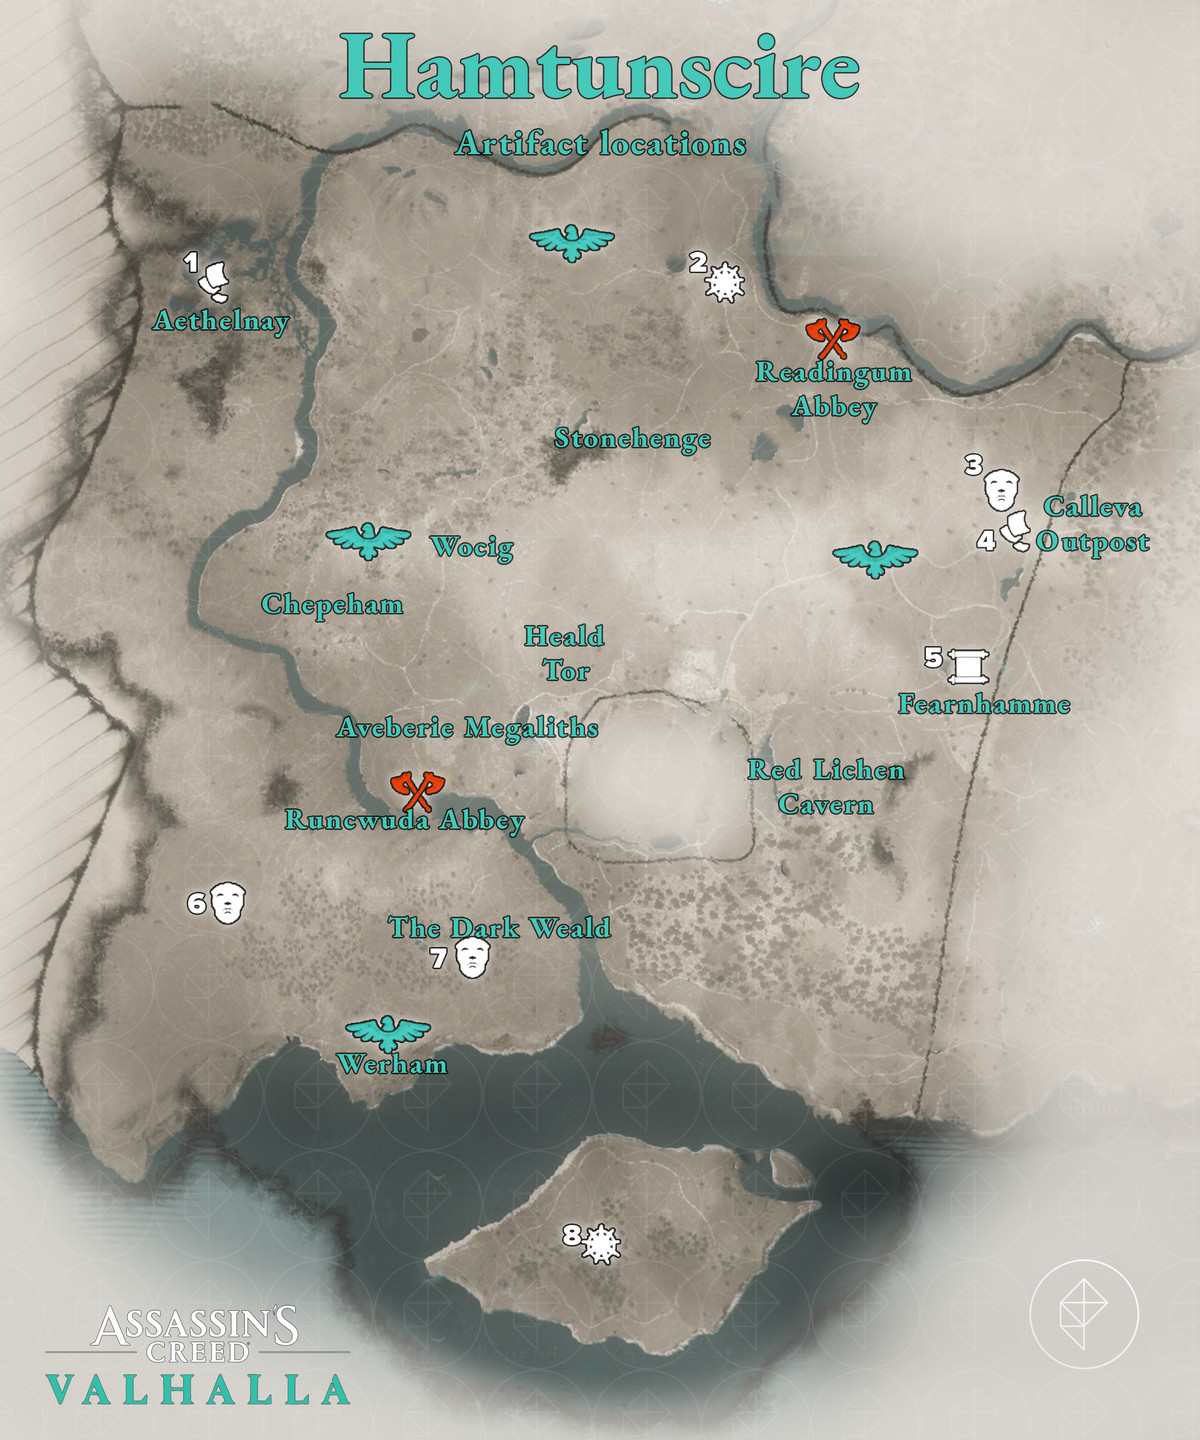 Hamtunscire Artifacts locations map